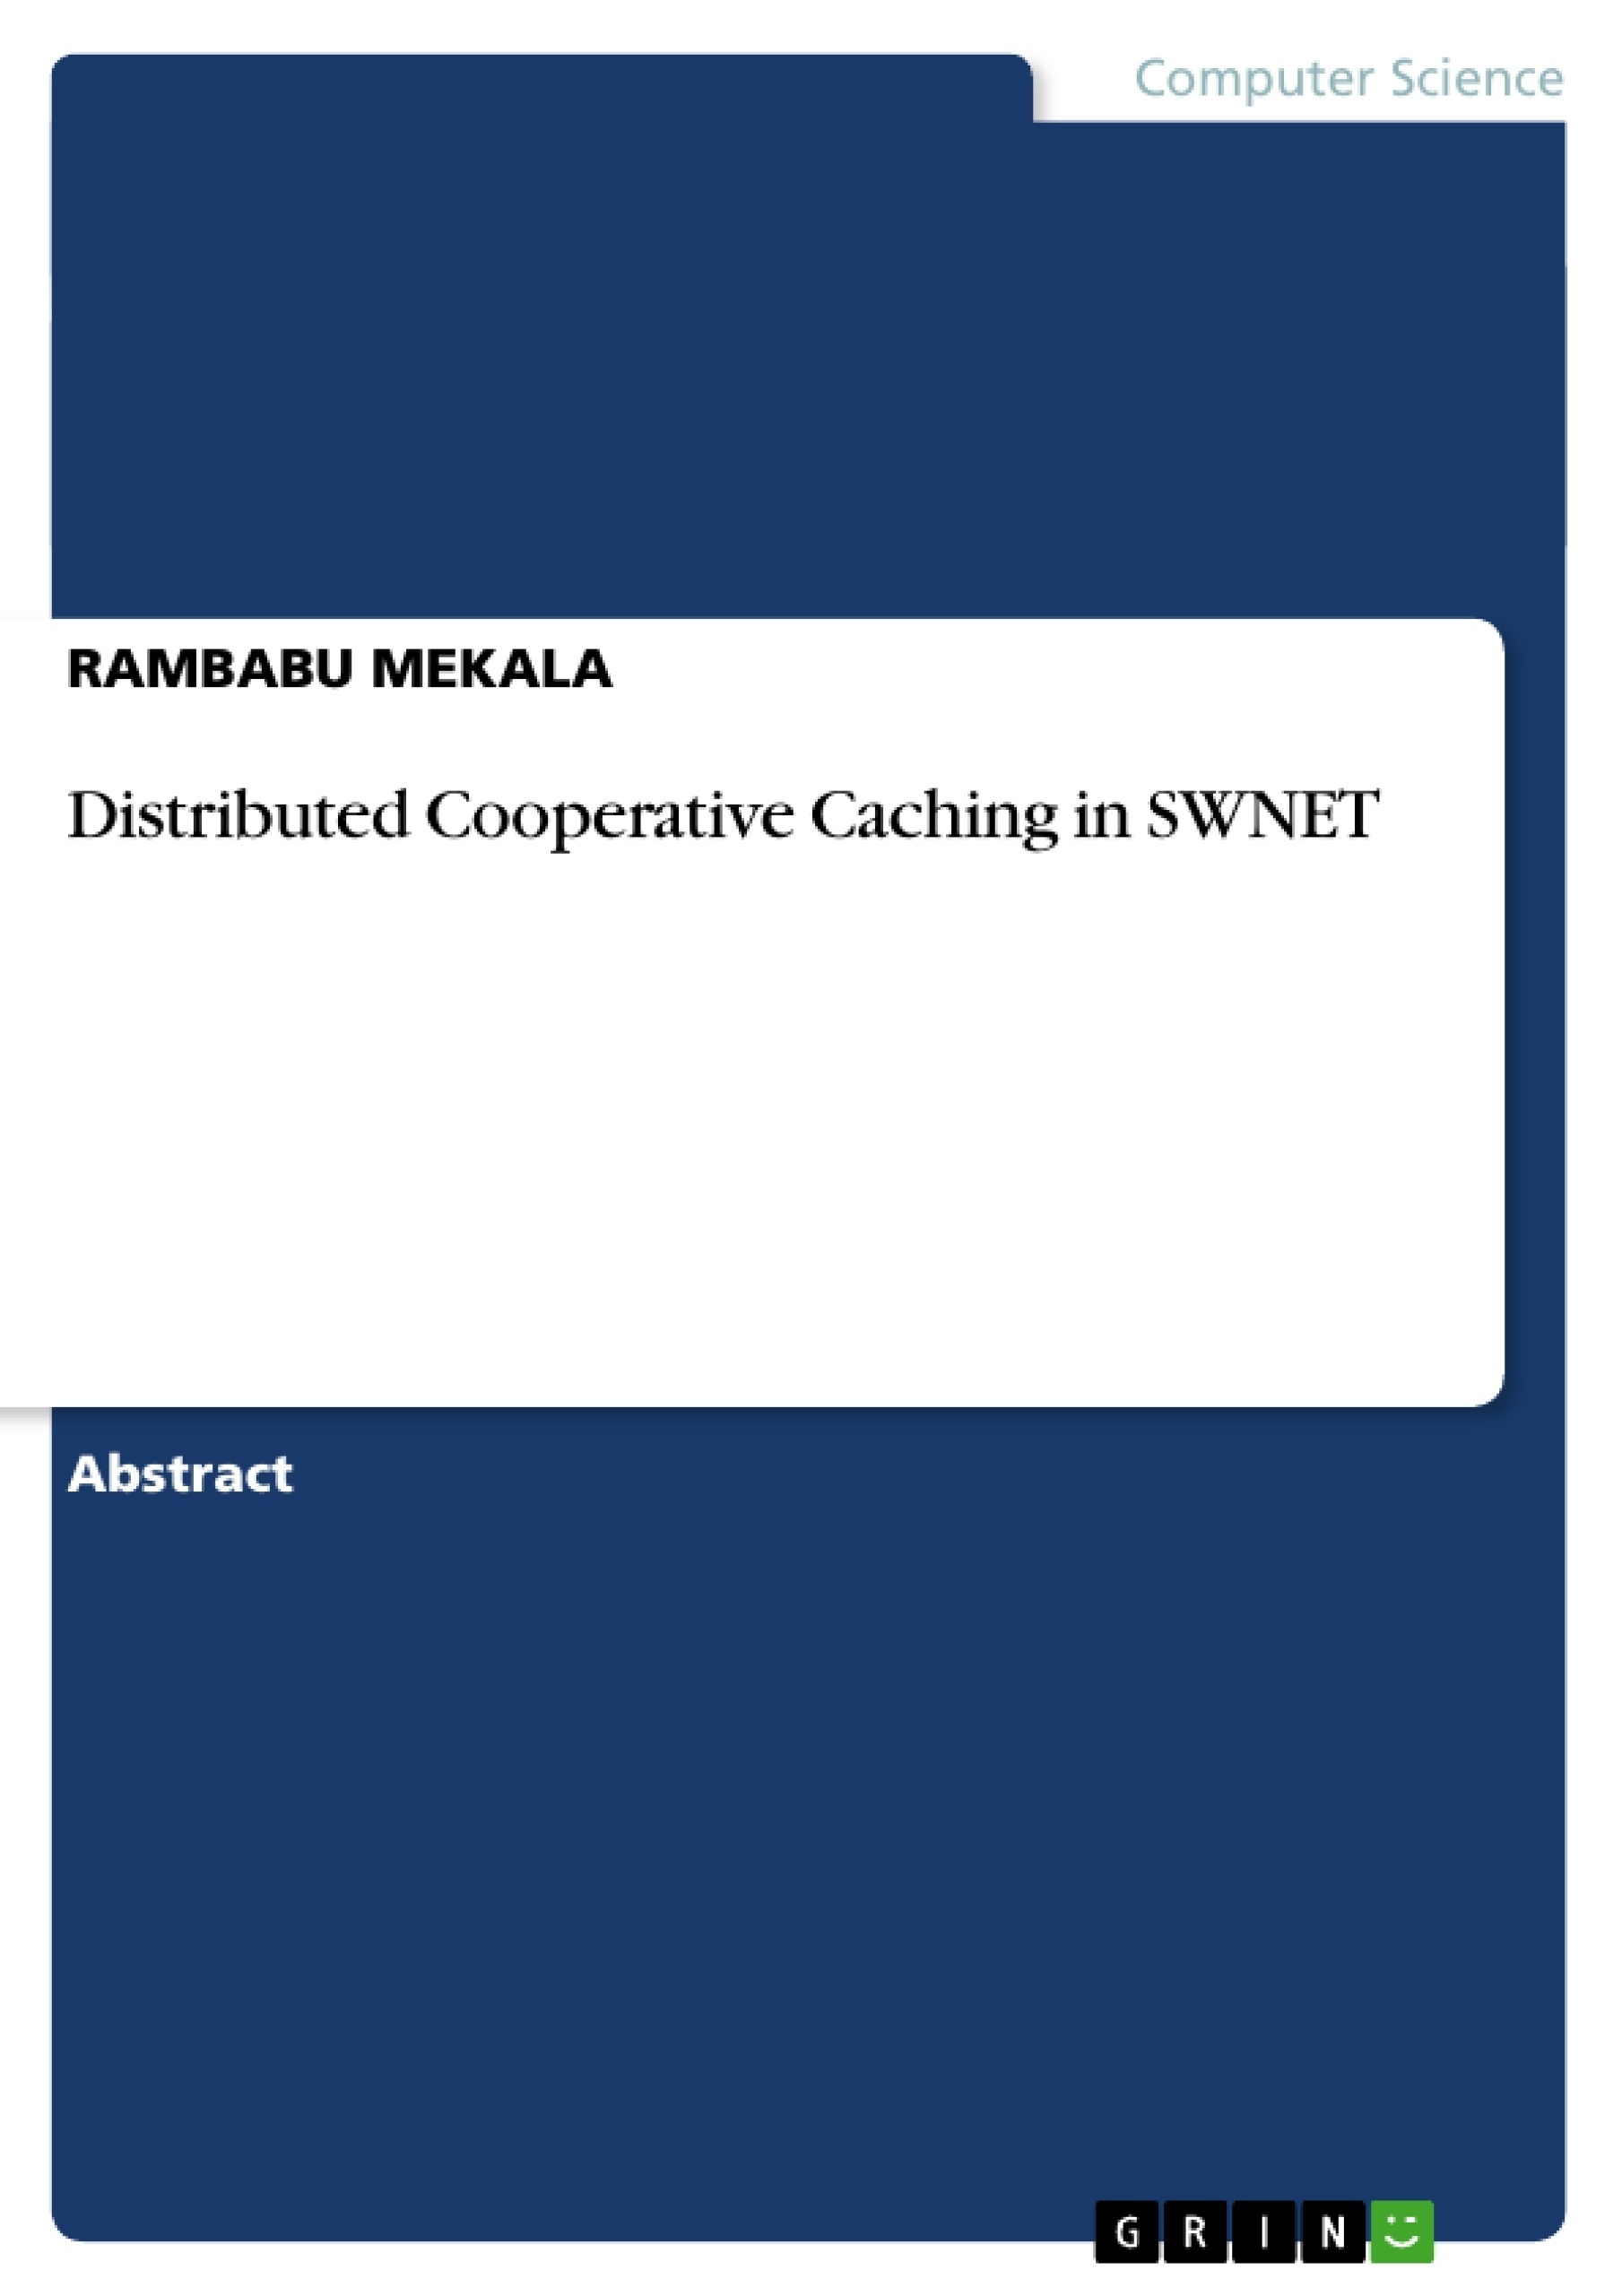 Title: Distributed Cooperative Caching in SWNET